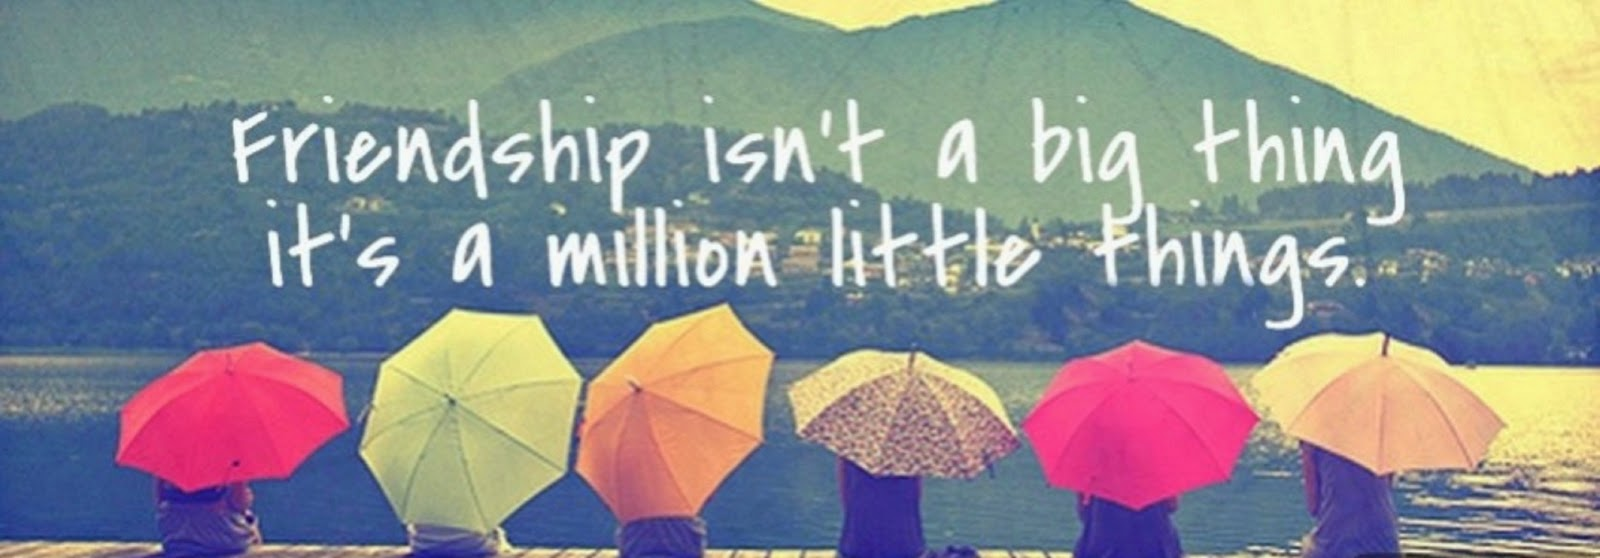 Friendship Quotes For Facebook Cover HD Wallpaper Free